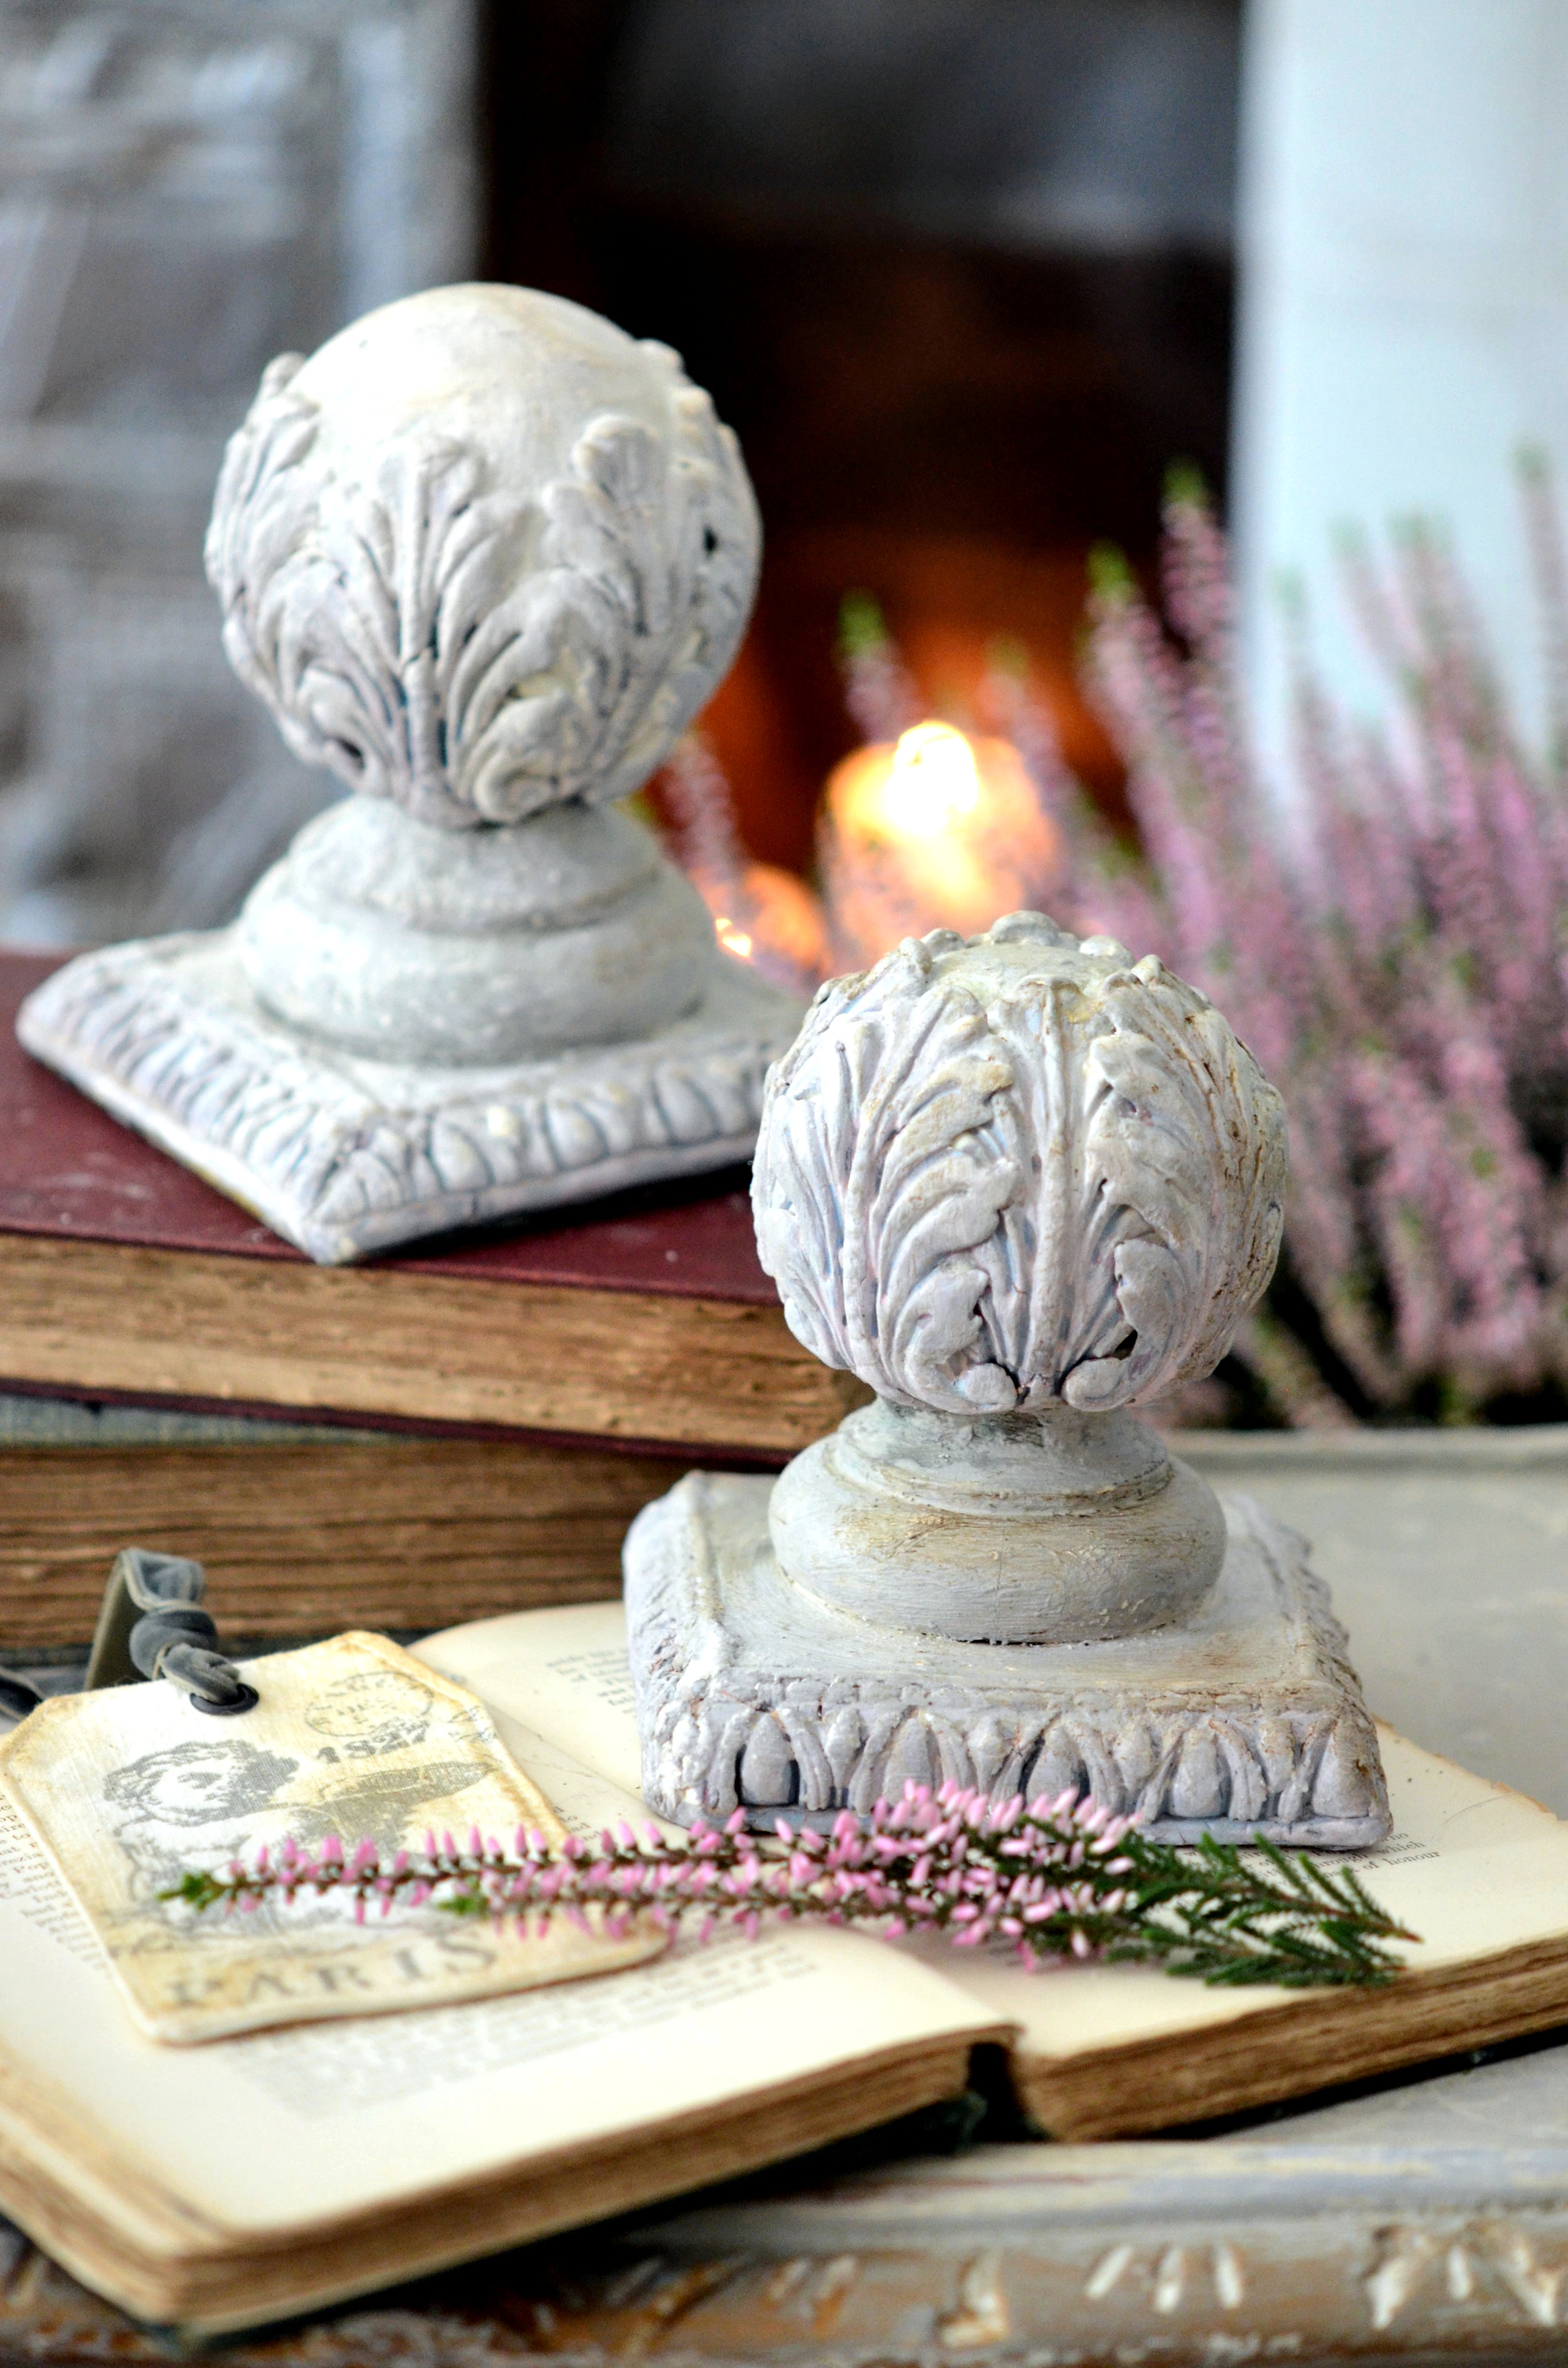 Autumn is the perfect time to create your own decor.I would like to show you how you can create your own attractive decorations that can be made quite quickly and easily. Iron Orchid Designs products by Prima allow you to add sophistication and style to your projects...